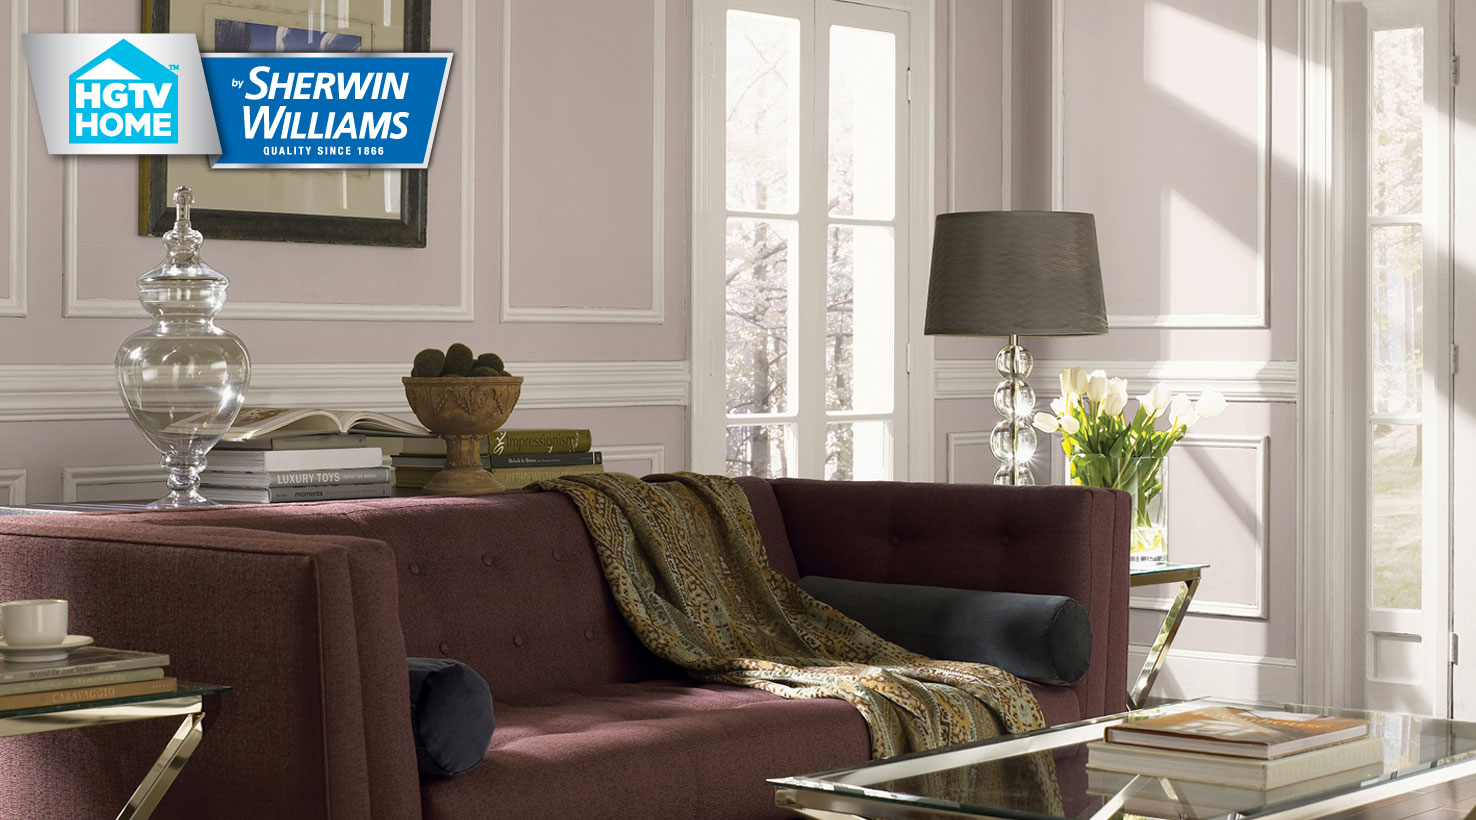 Liveable Luxe Paint Color Collection Hgtv Home By Sherwin